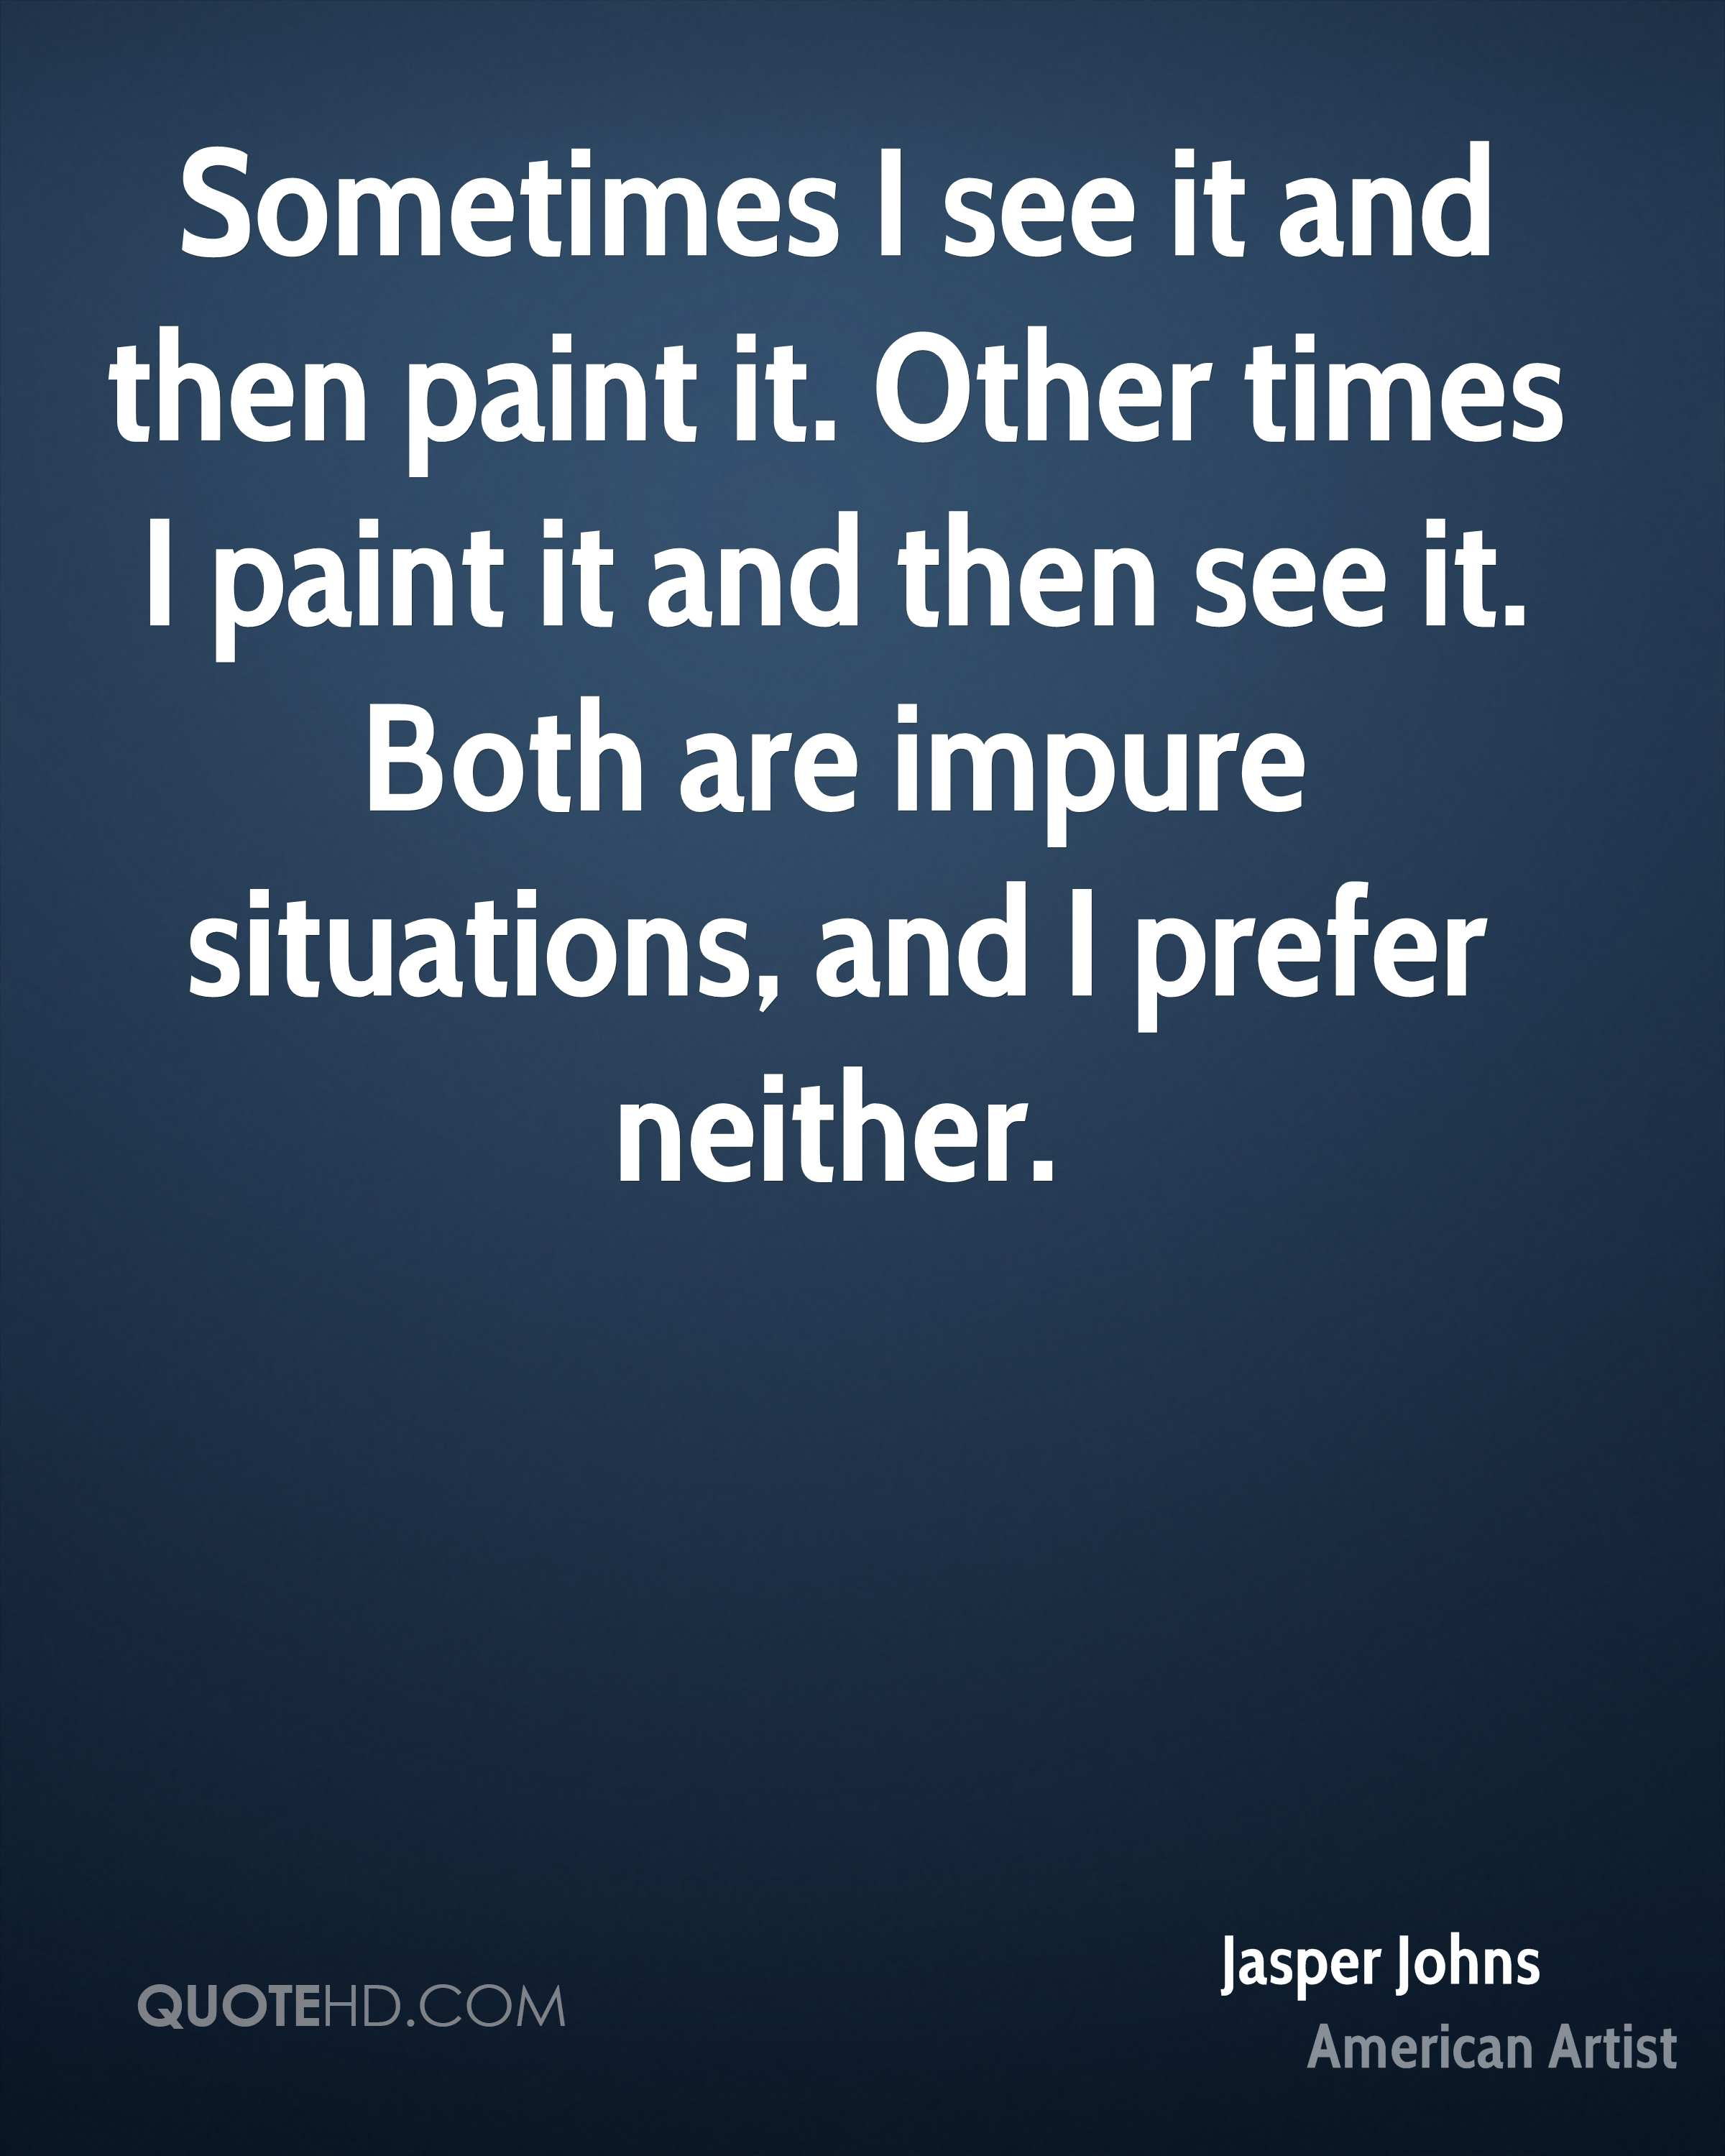 Sometimes I see it and then paint it. Other times I paint it and then see it. Both are impure situations, and I prefer neither.